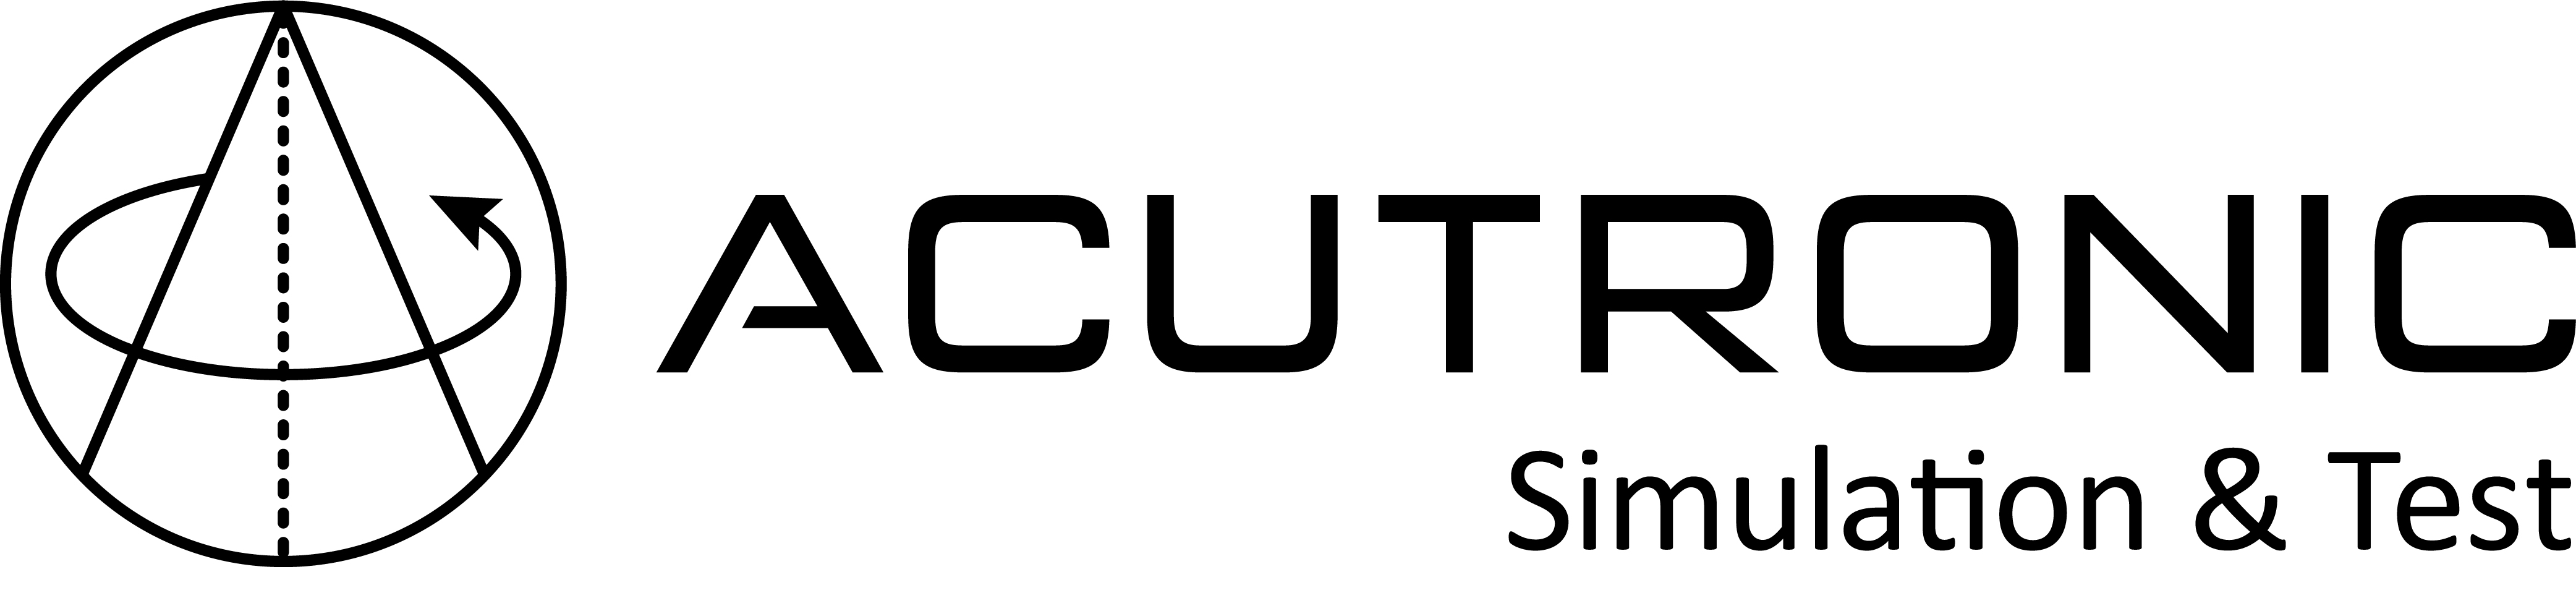 ACUTRONIC USA, Inc.